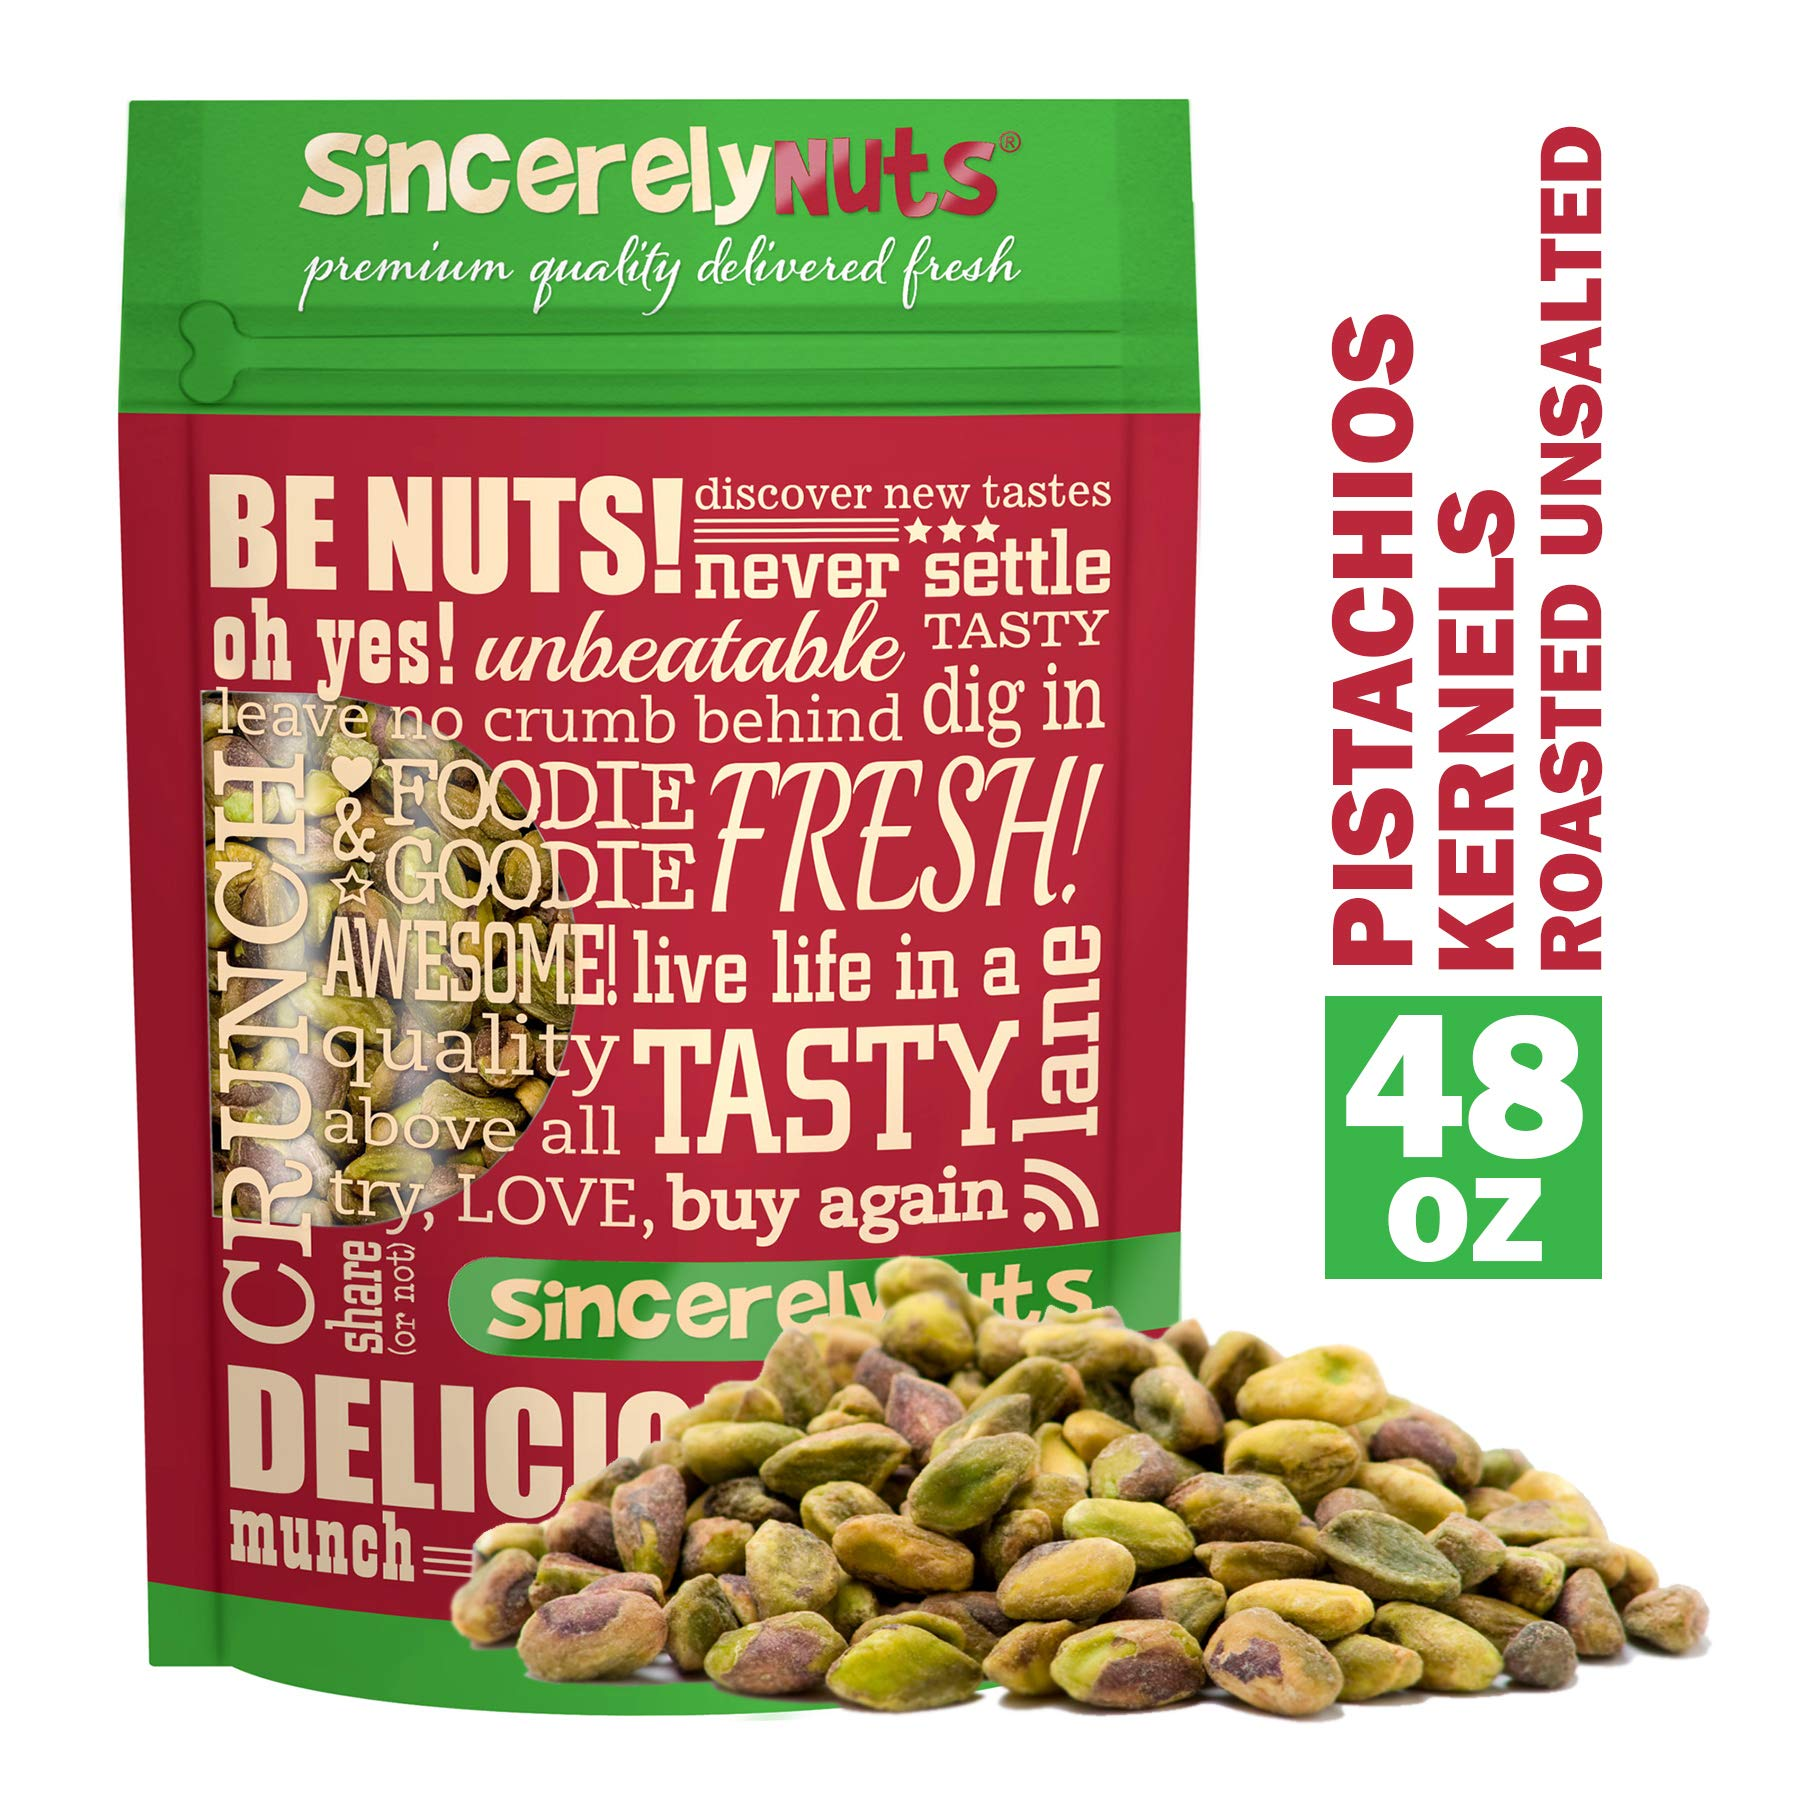 Sincerely Nuts Pistachios Roasted & Unsalted Kernels (No Shell) - 3 Lb. Bag - Healthy Snack Food | Great for Cooking | Source of Fiber, Protein & Vitamins | Gourmet | Vegan, Kosher & Gluten Free by Sincerely Nuts